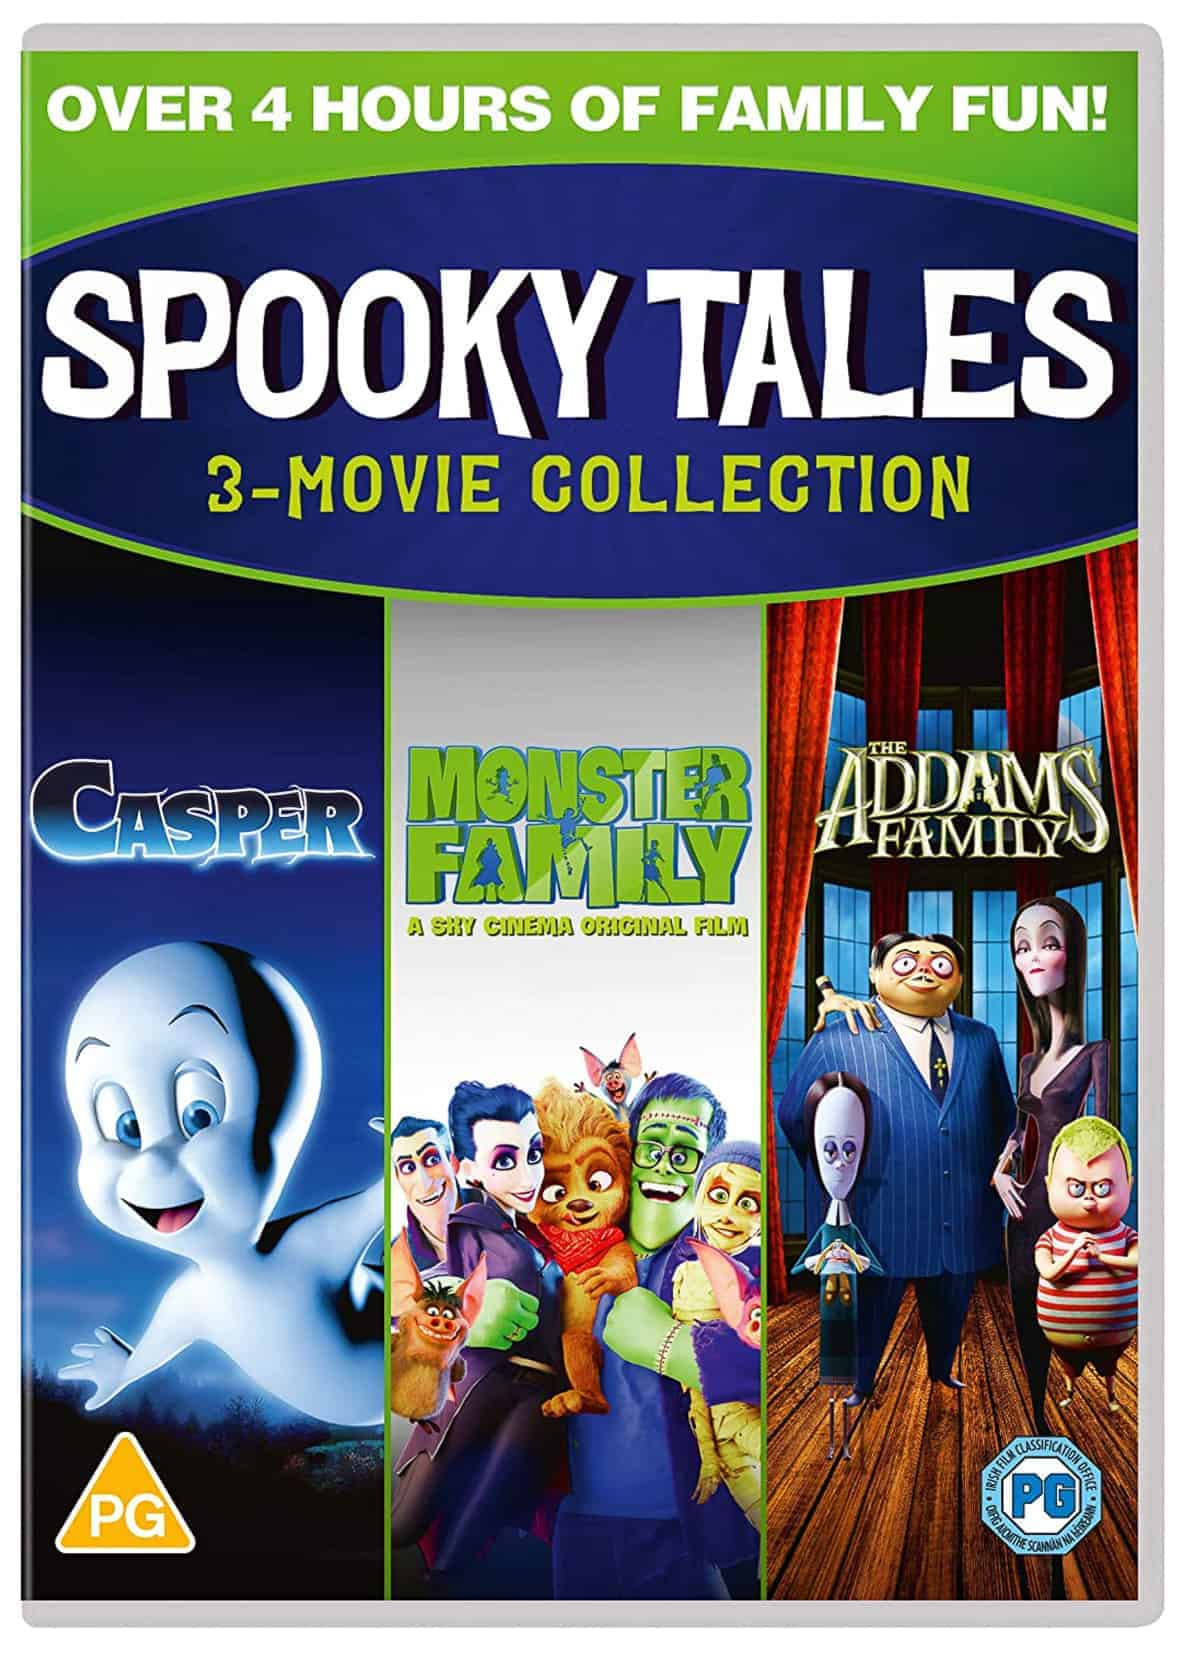 The Spooky Tales DVD Collection.